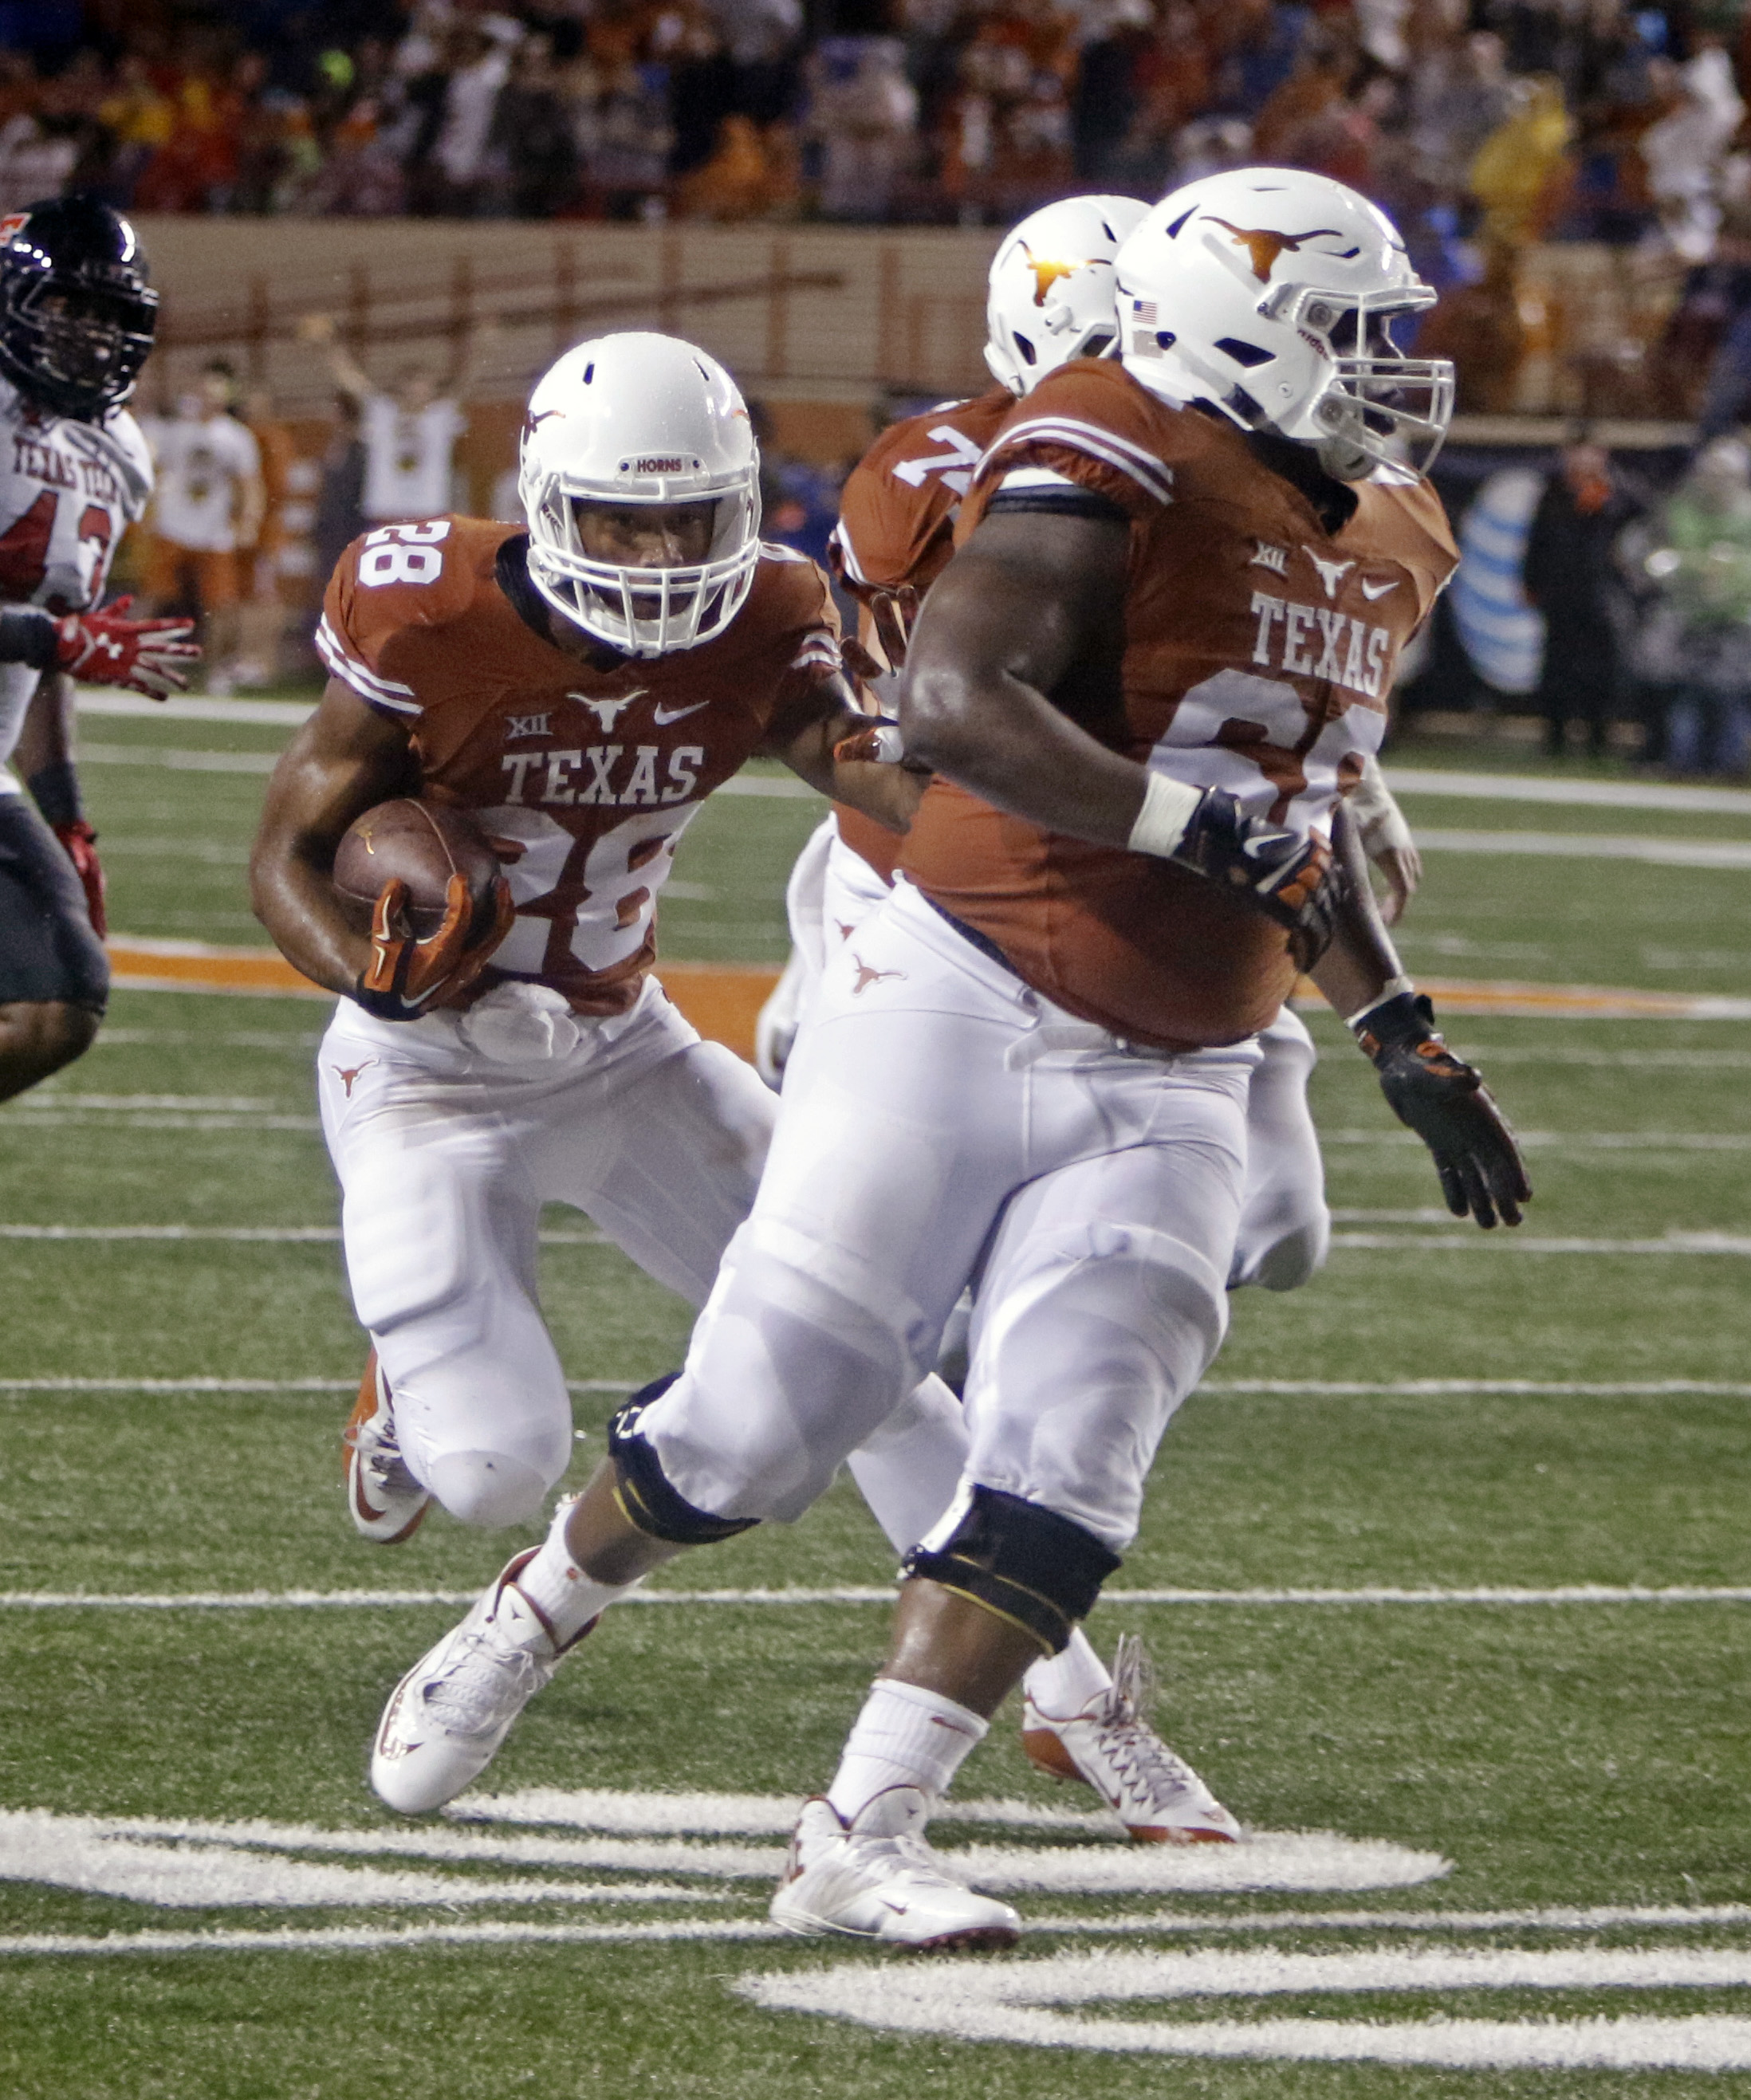 Texas running back Kirk Johnson (28) runs behind blockers Sedrick Flowers (66) and Taylor Doyle during the first half of an NCAA college football game against Texas Tech, Thursday, Nov. 26, 2015, in Austin, Texas. (AP Photo/Michael Thomas)